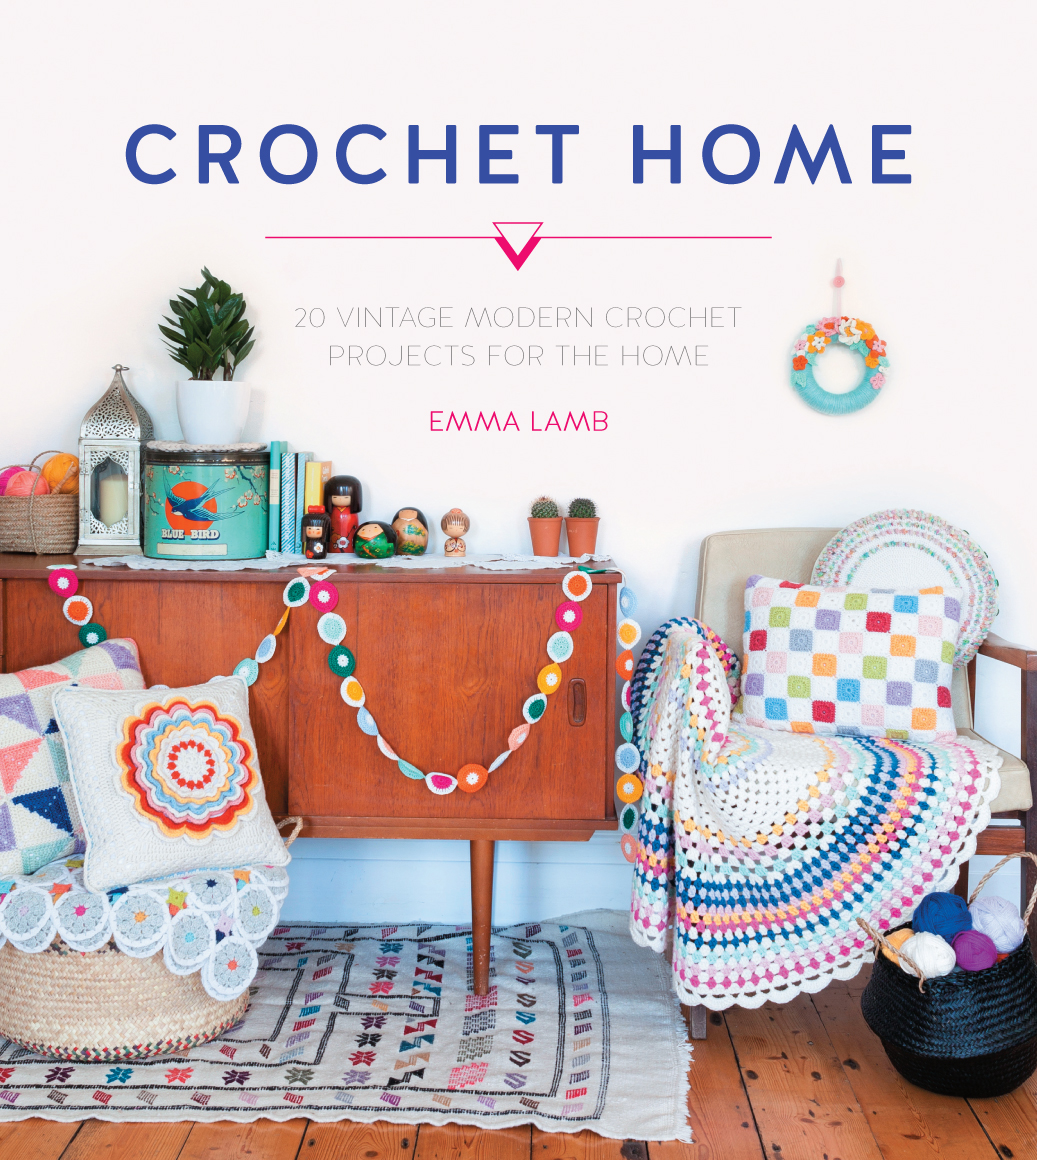 Crochet Home - 20 Vntage Modern Crochet Projects for the Home by Emma Lamb: Book Review | www.thestitchinmommy.com